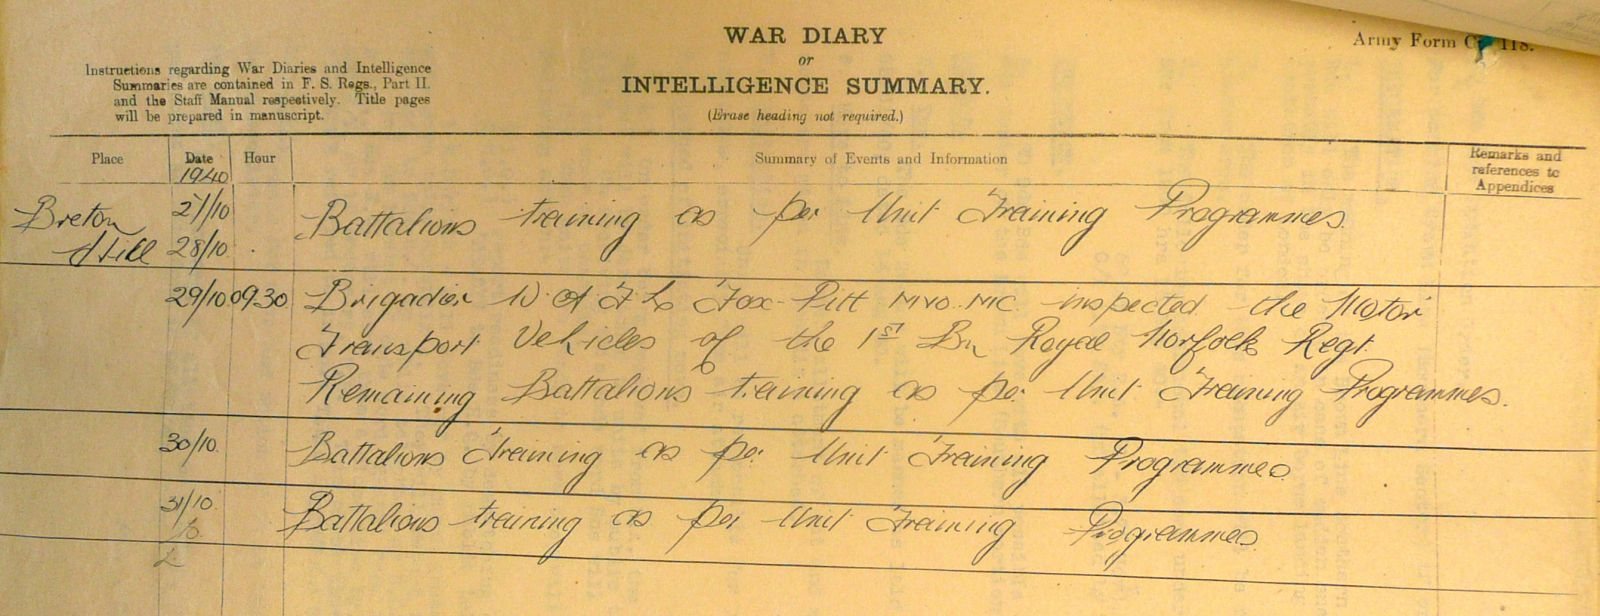 September & October 1940 War Diary, 20 Guards Brigade, Headquarters